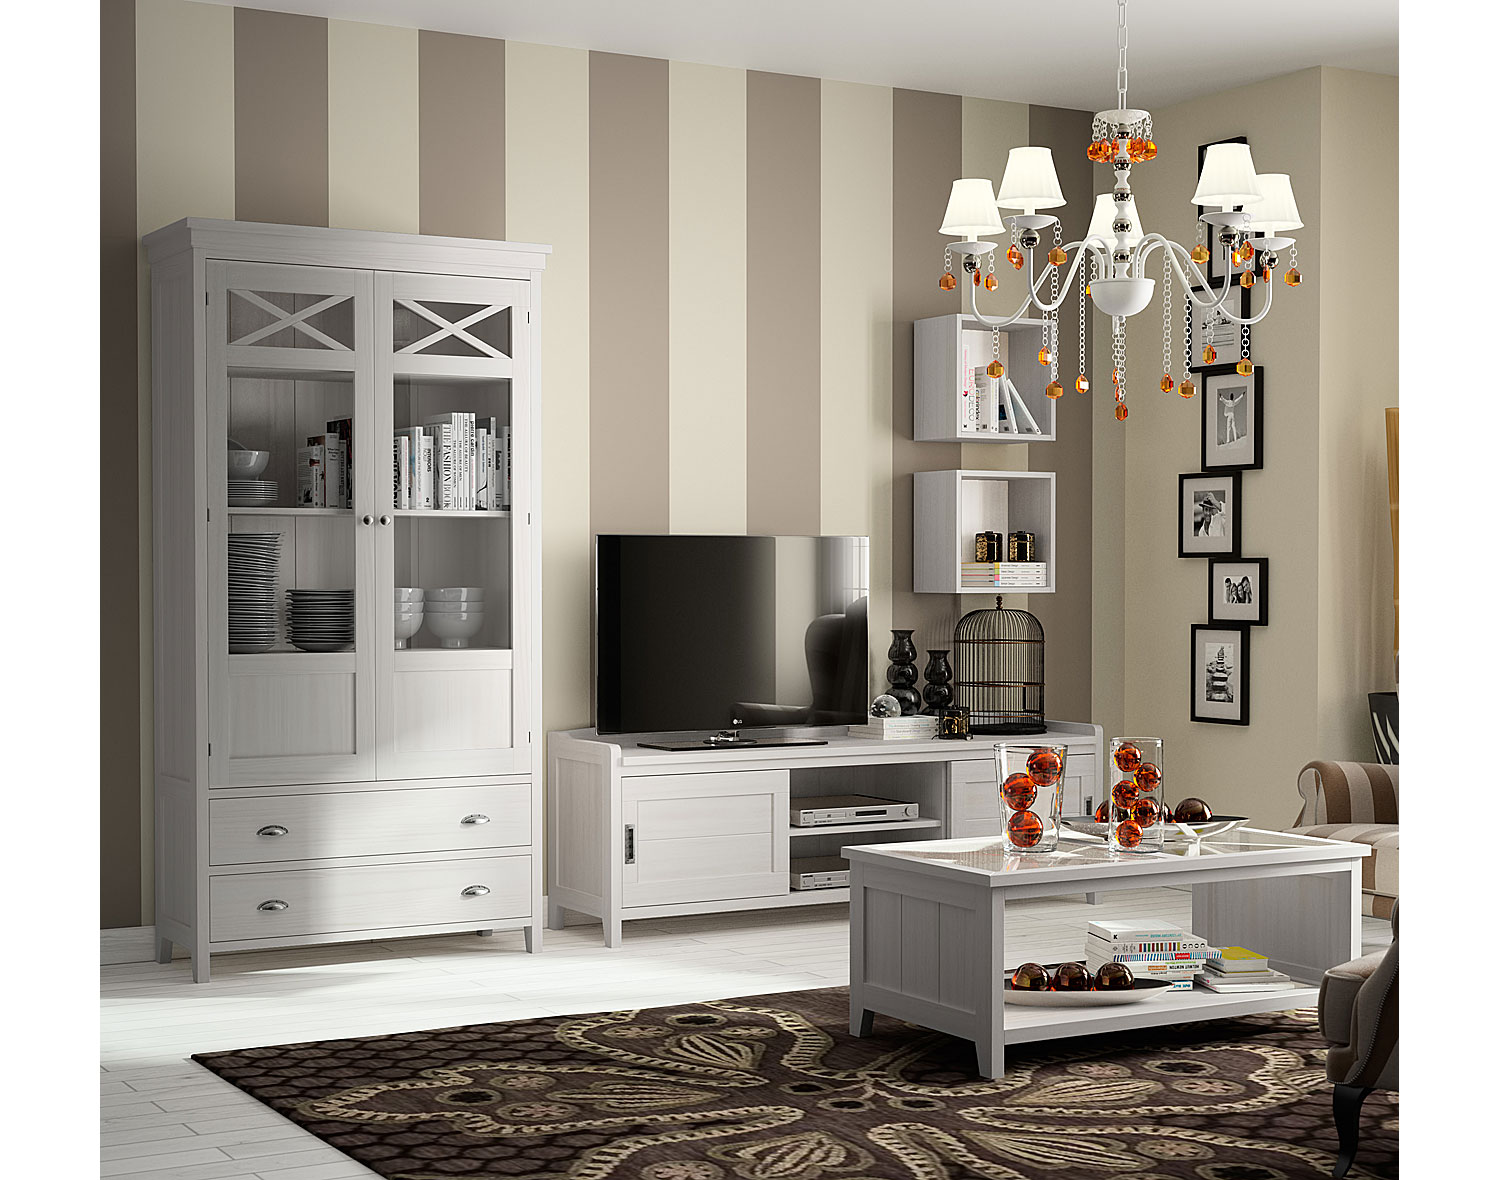 Muebles ba o blanco roto - Salon en blanco ...